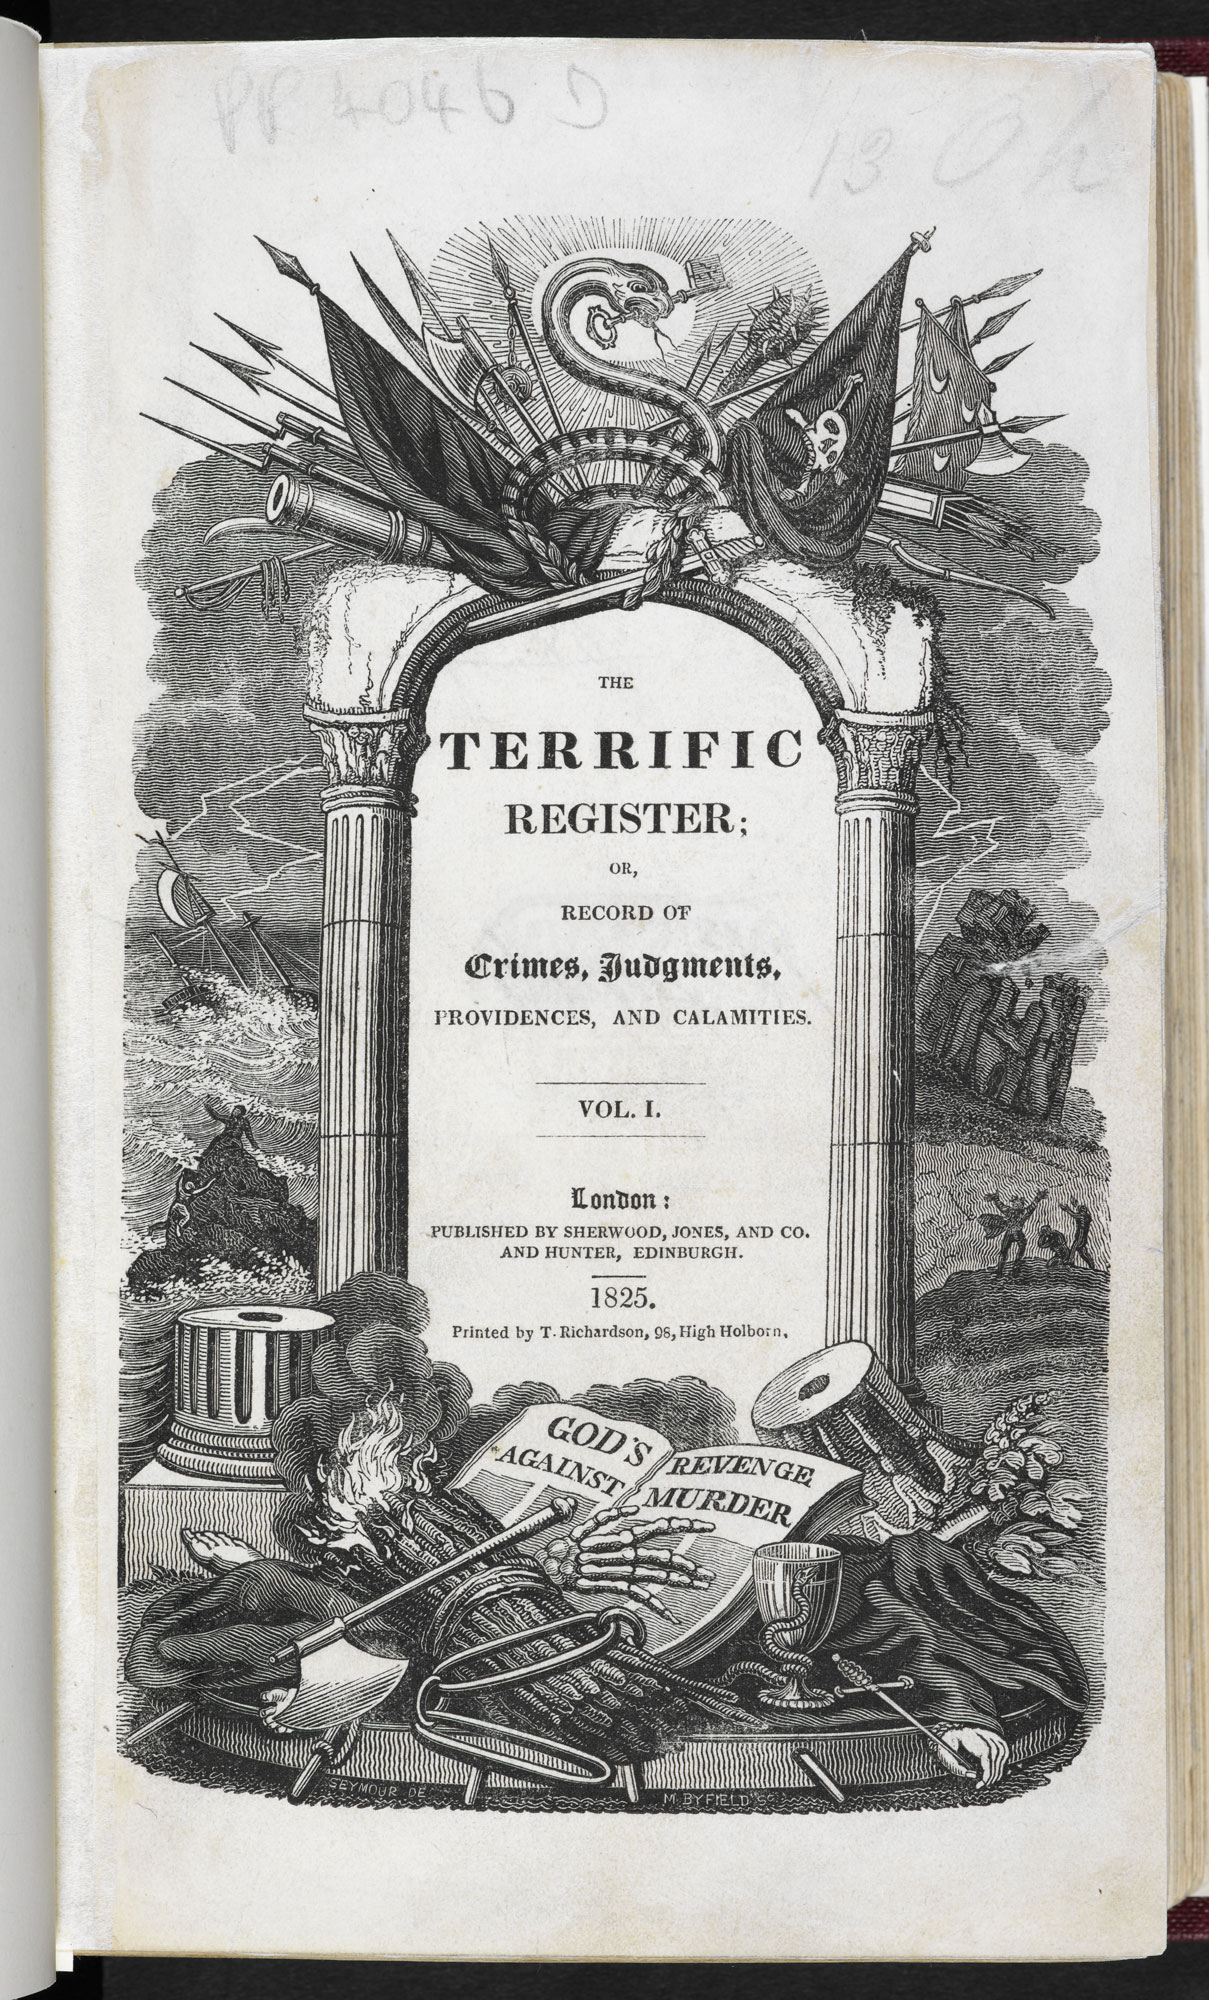 The Terrific Register, or, Record of Crimes, Judgments, Providencies and Calamities.  [page: frontispiece]